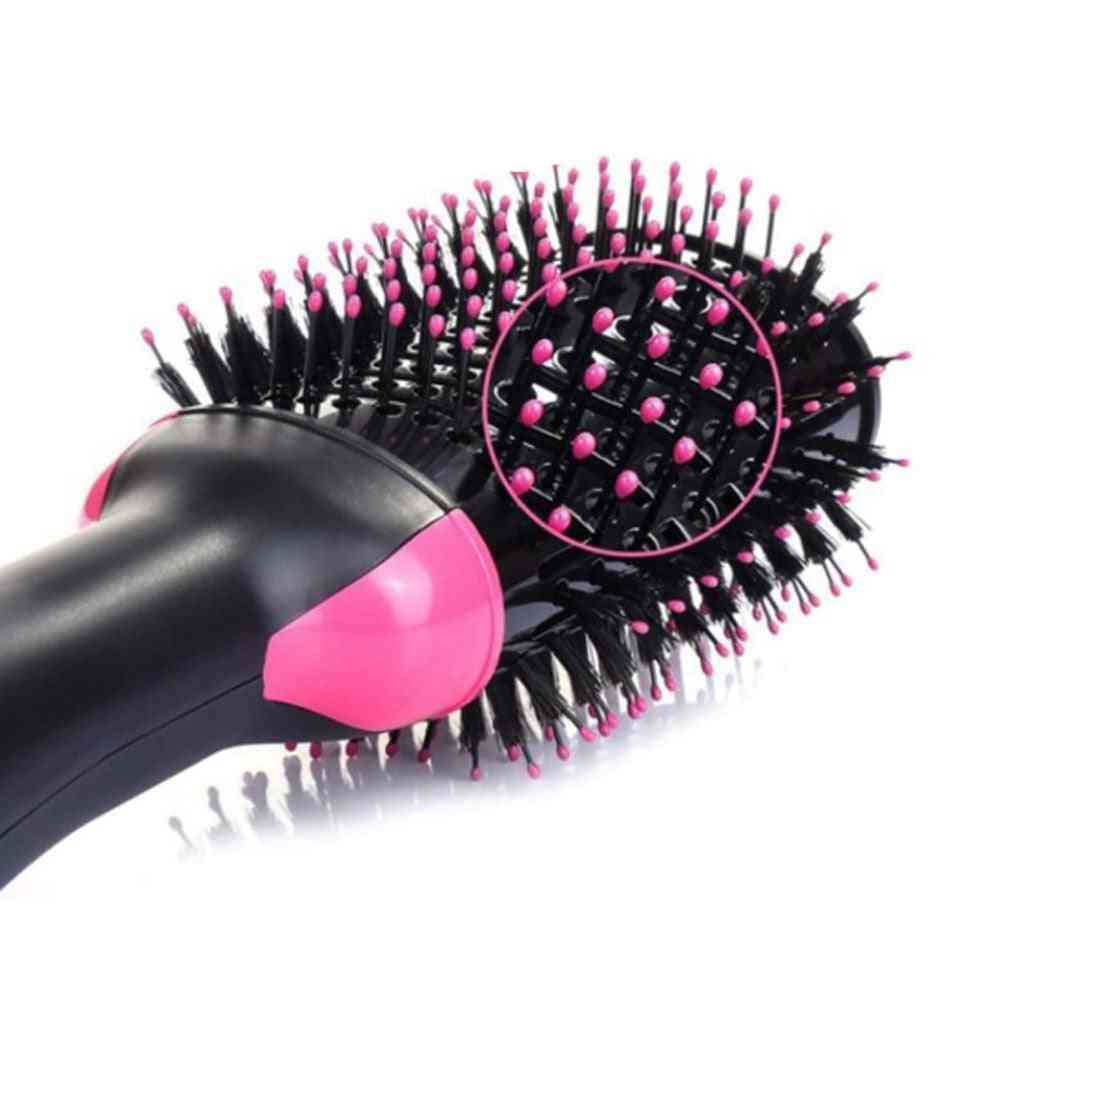 Hair Dryer And Volumizer Air Brush, Professional Blow Comb